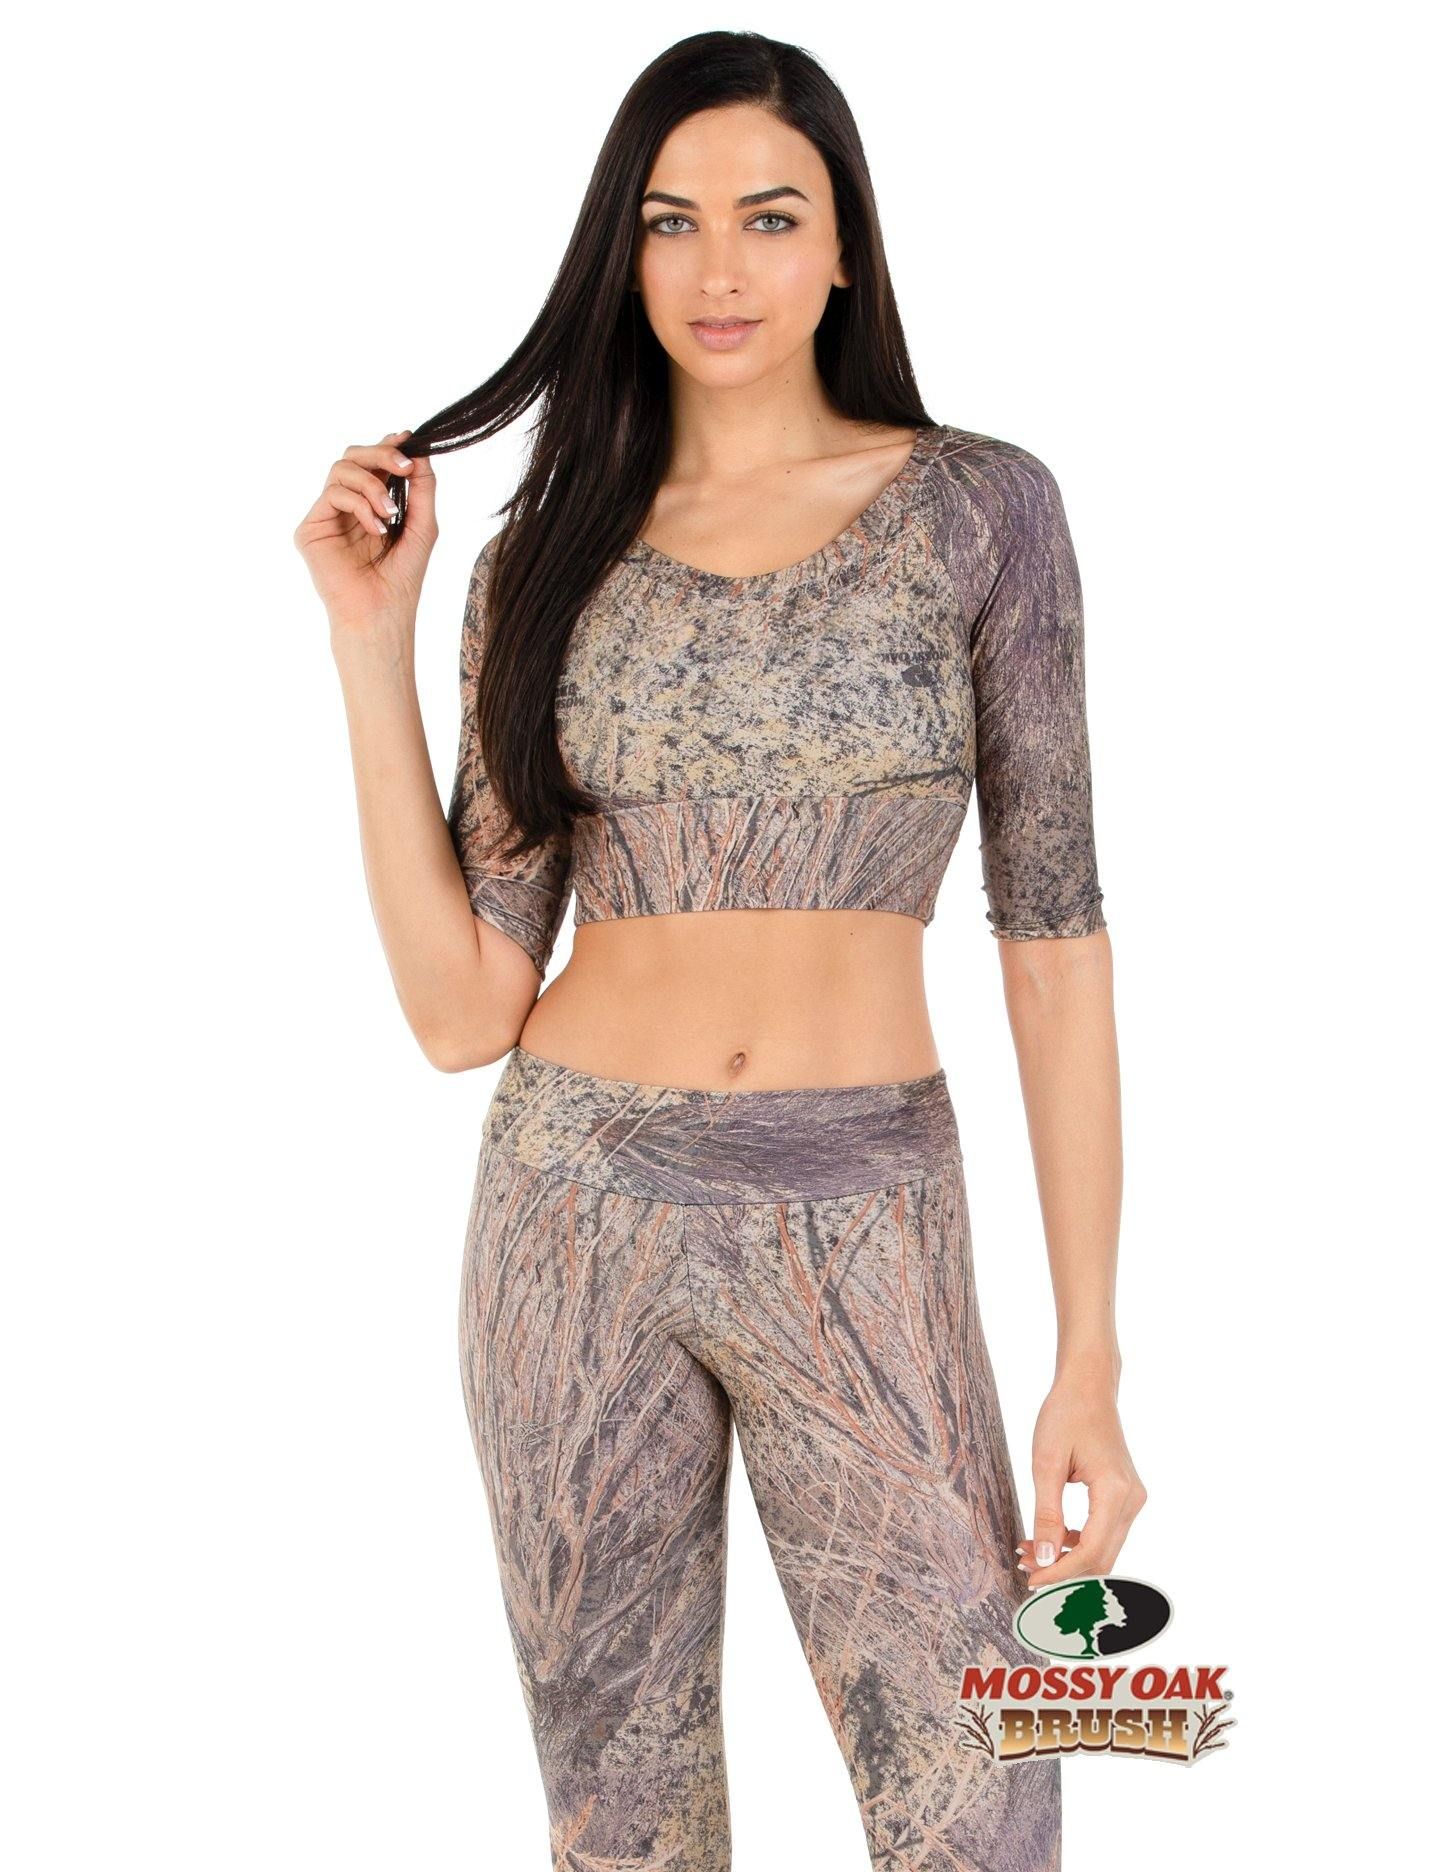 Apsara Cropped Top, Mossy Oak Brush